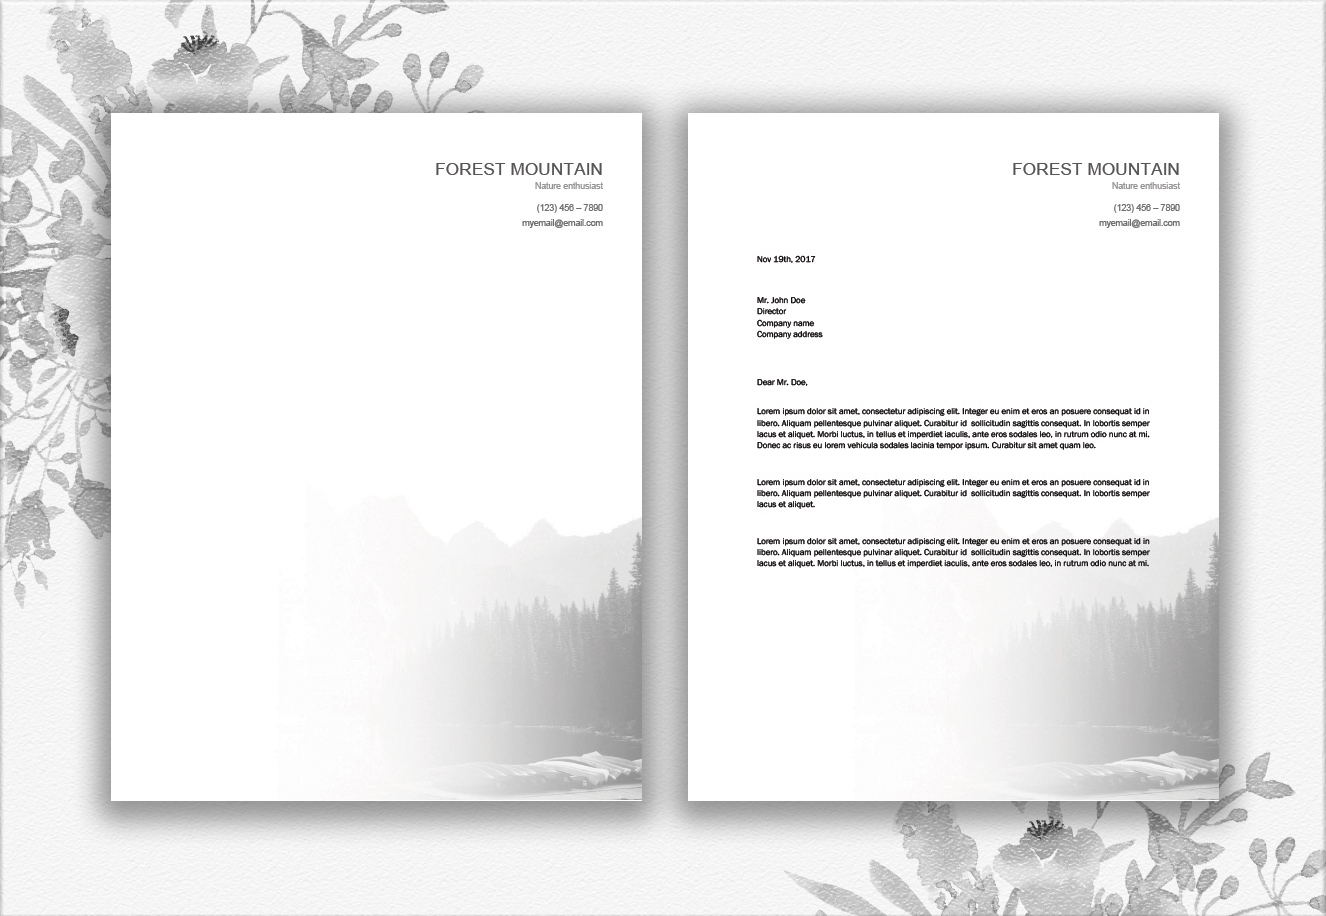 Mountains Letterhead Design Template example image 3